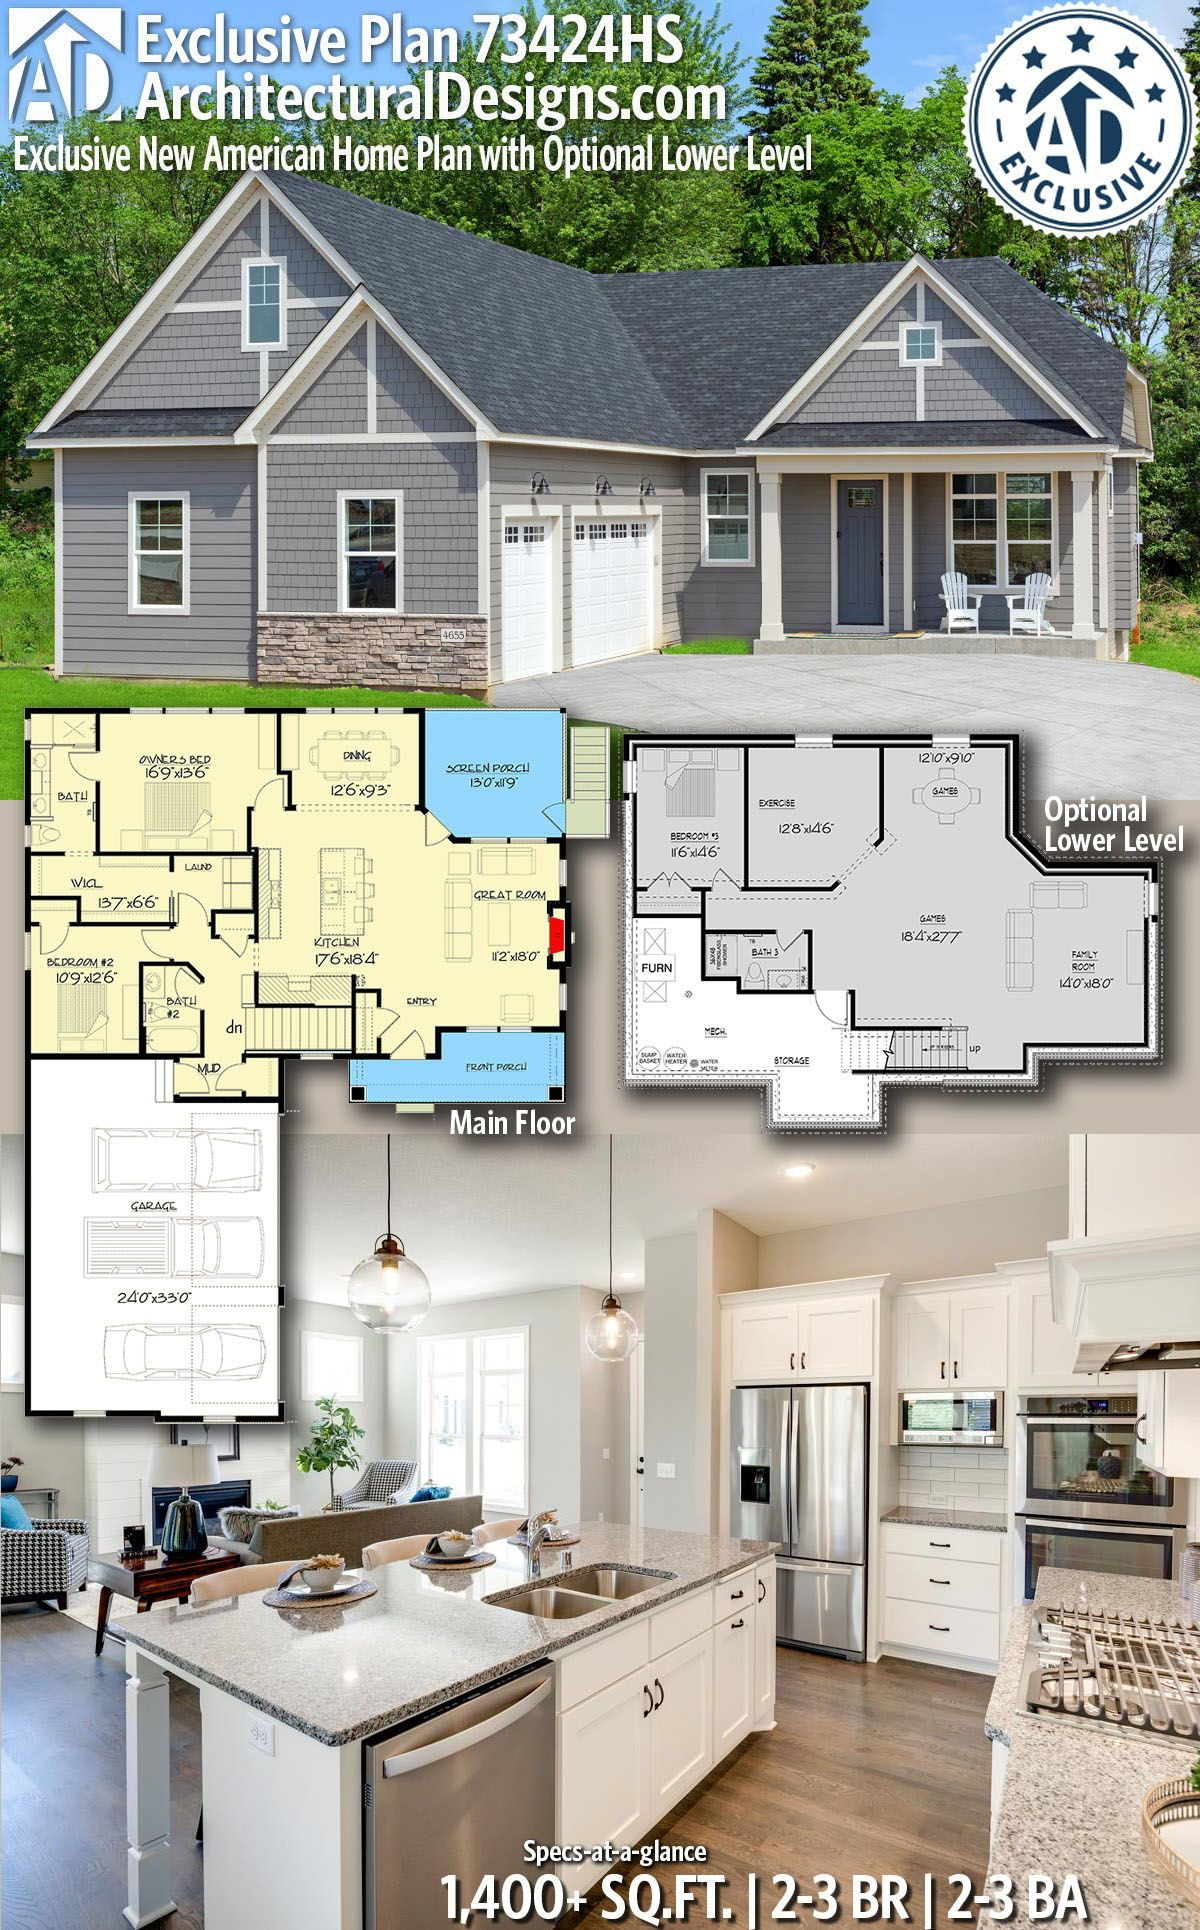 Architectural Designs New American Home Plan 73424hs Gives You 2 3 Bedrooms 2 3 Baths And 1 40 Craftsman House Plans House Plans Multigenerational House Plans